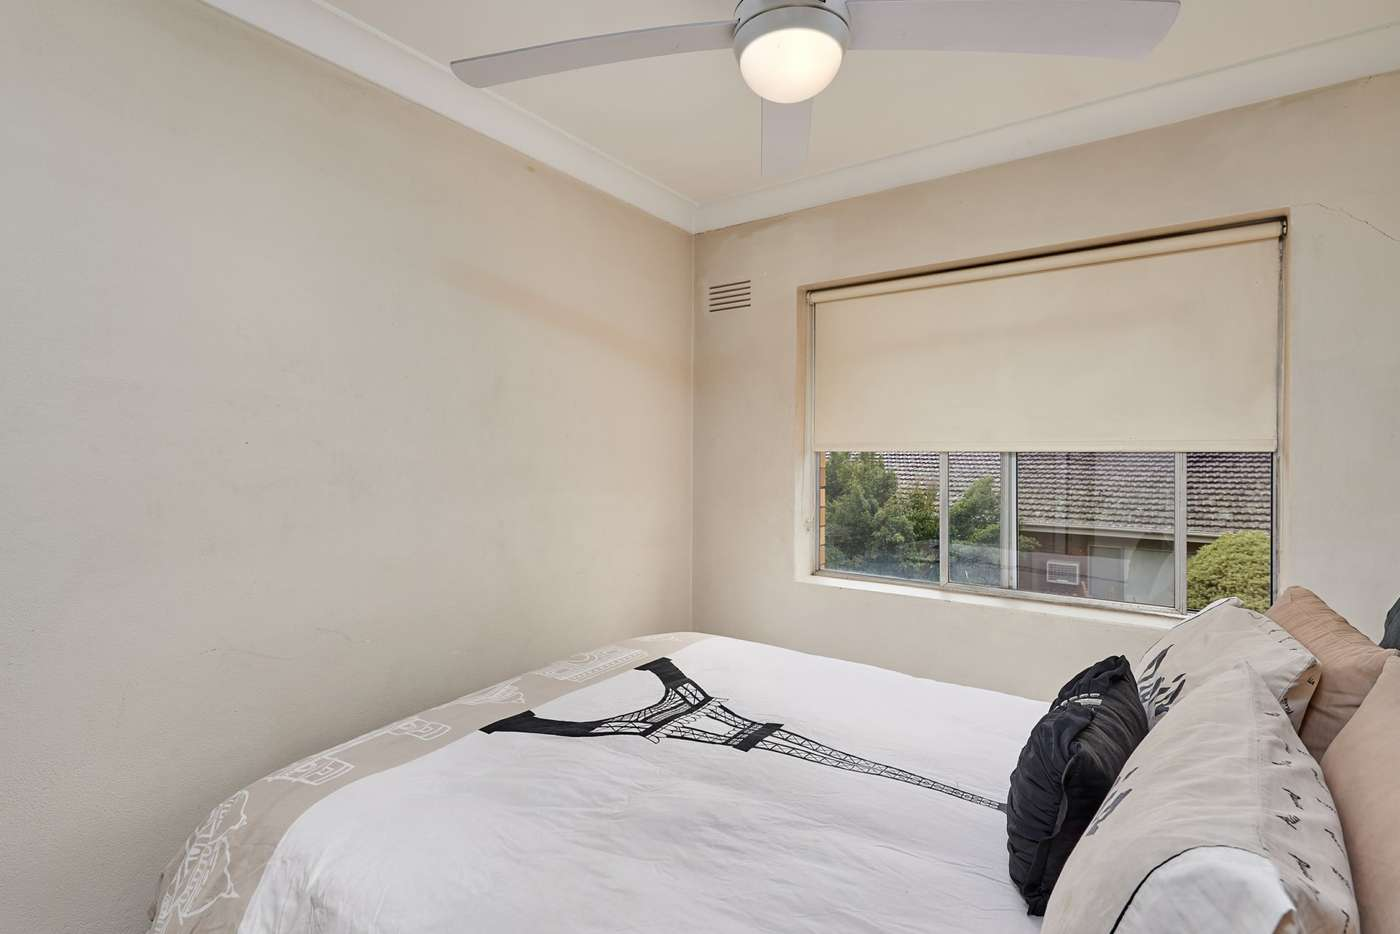 Fifth view of Homely house listing, Unit 5/12 Higgins Avenue, Wagga Wagga NSW 2650